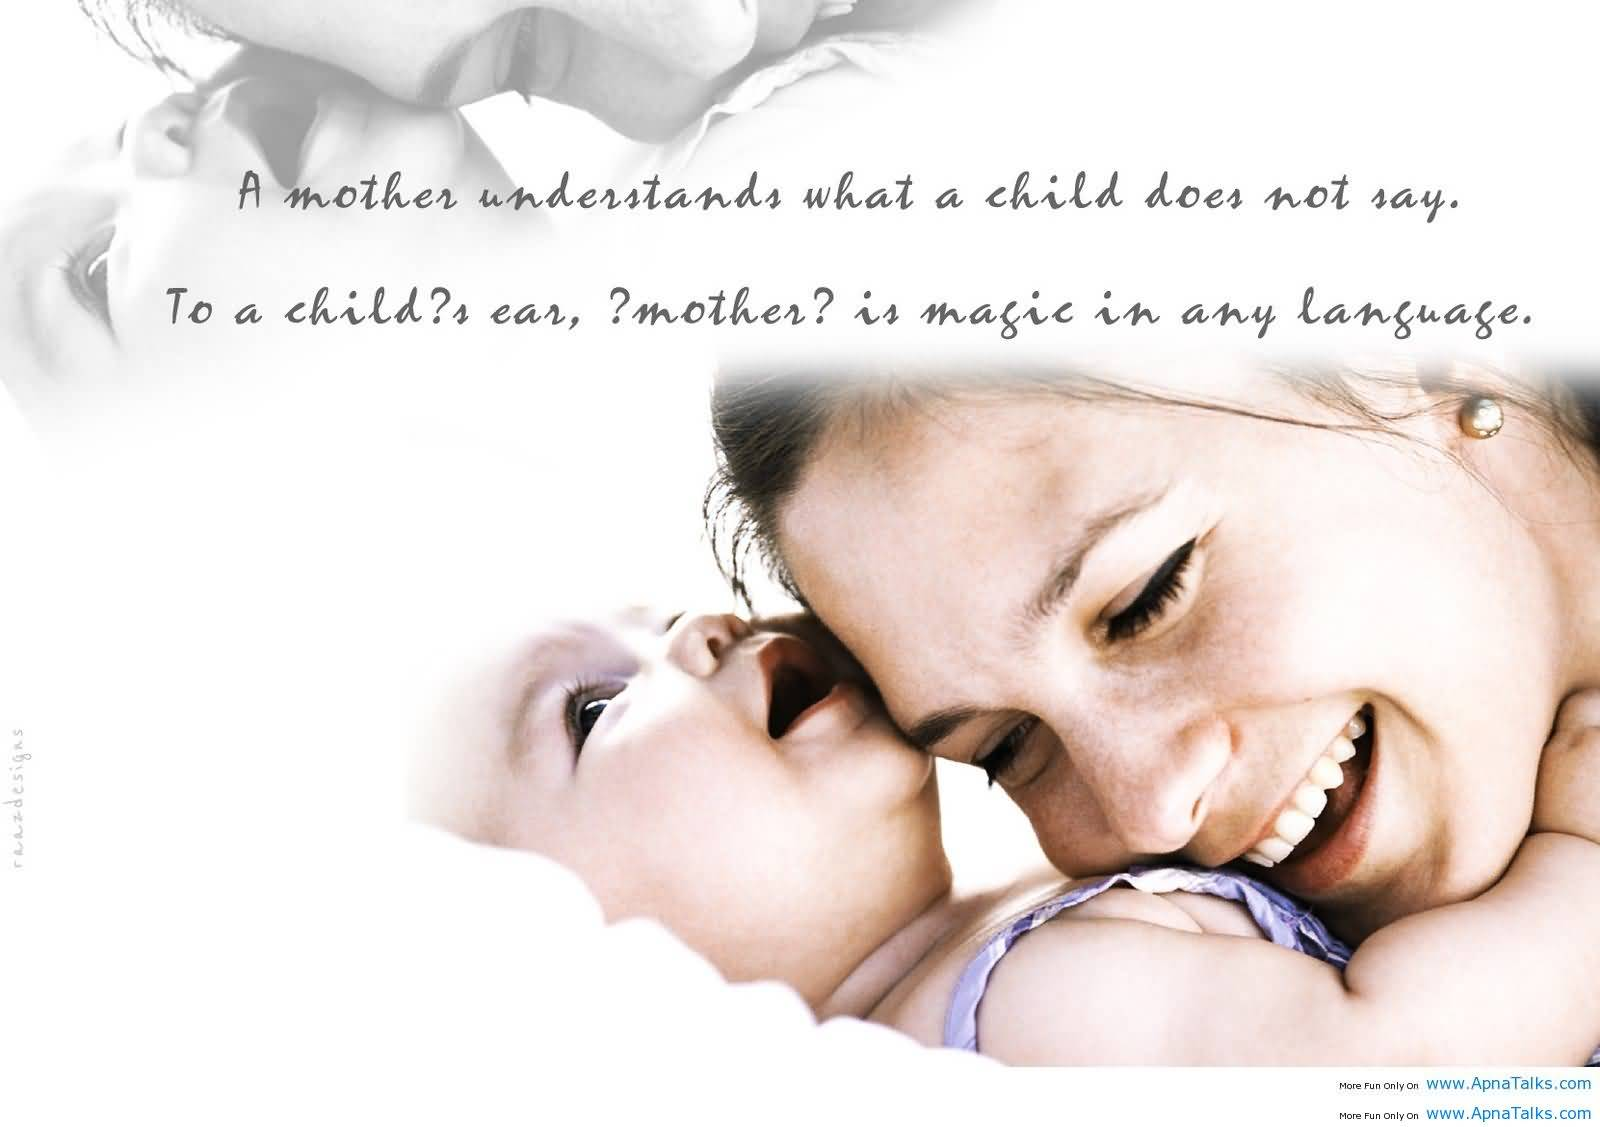 Baby Quotes And Sayings With Love A Mother Understands What A Child Does Not Say. To A Child!s Ear, Mother! Is Magic.